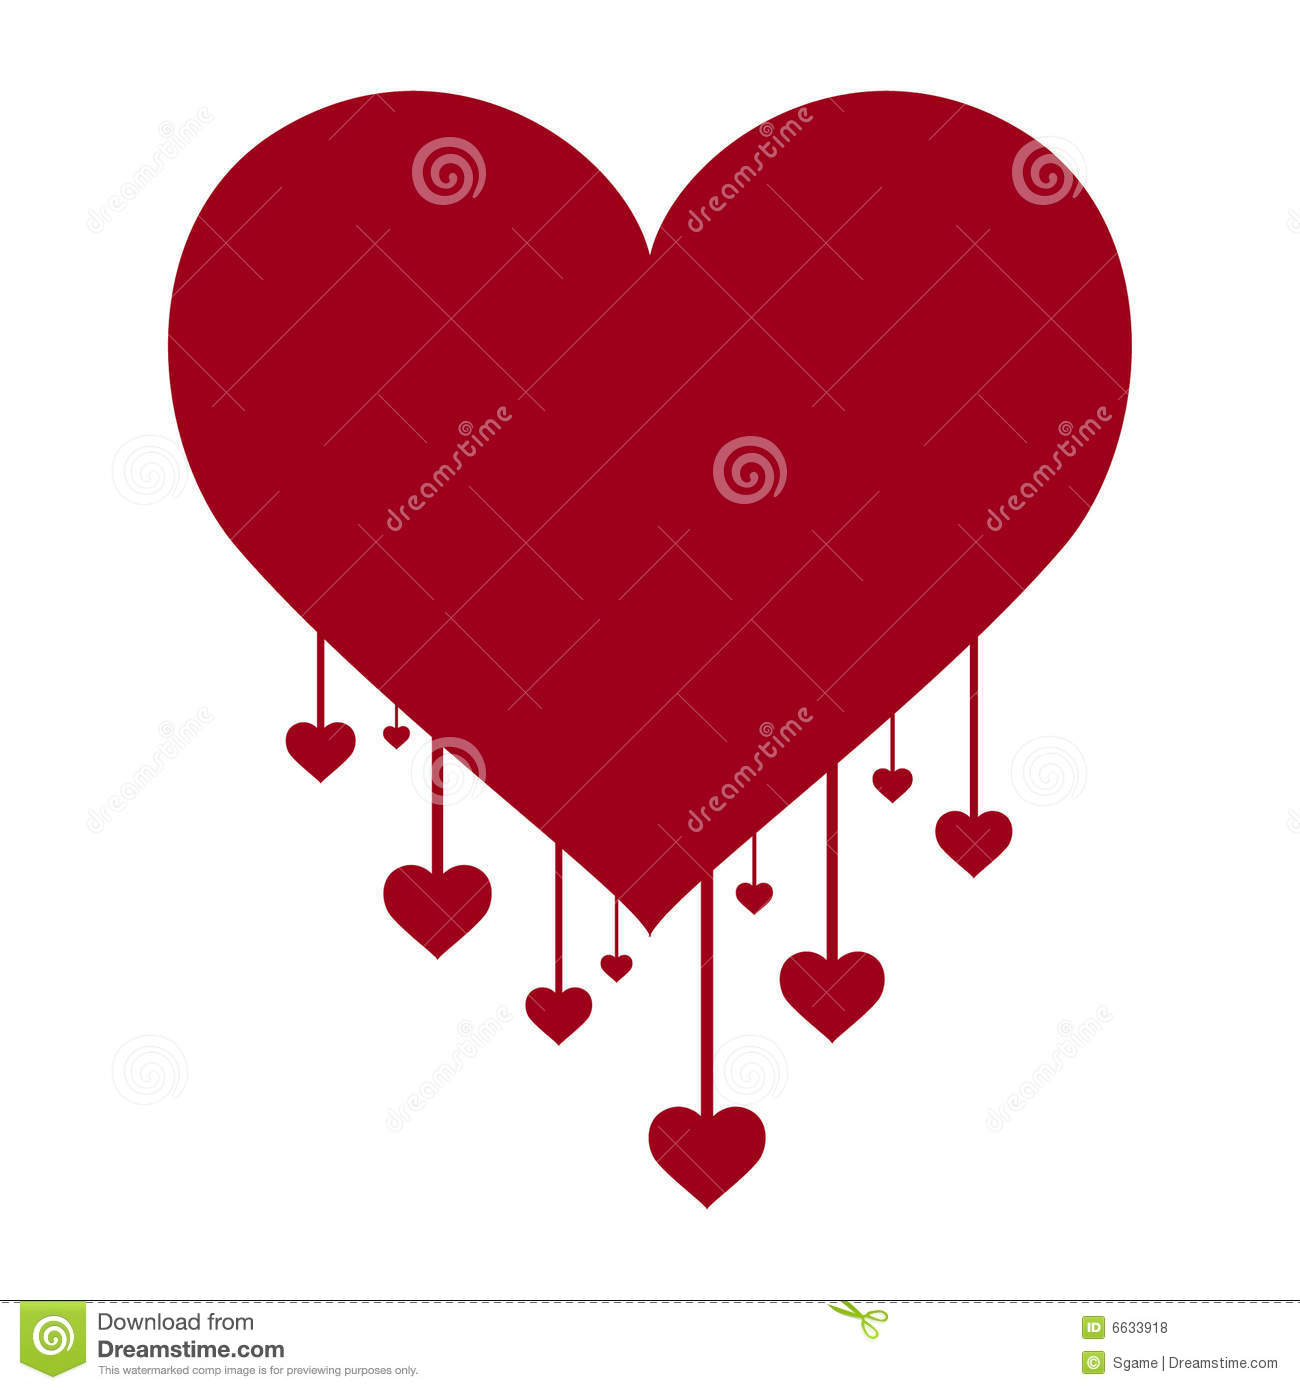 Red Hearts Large And Small Royalty Free Stock Photos